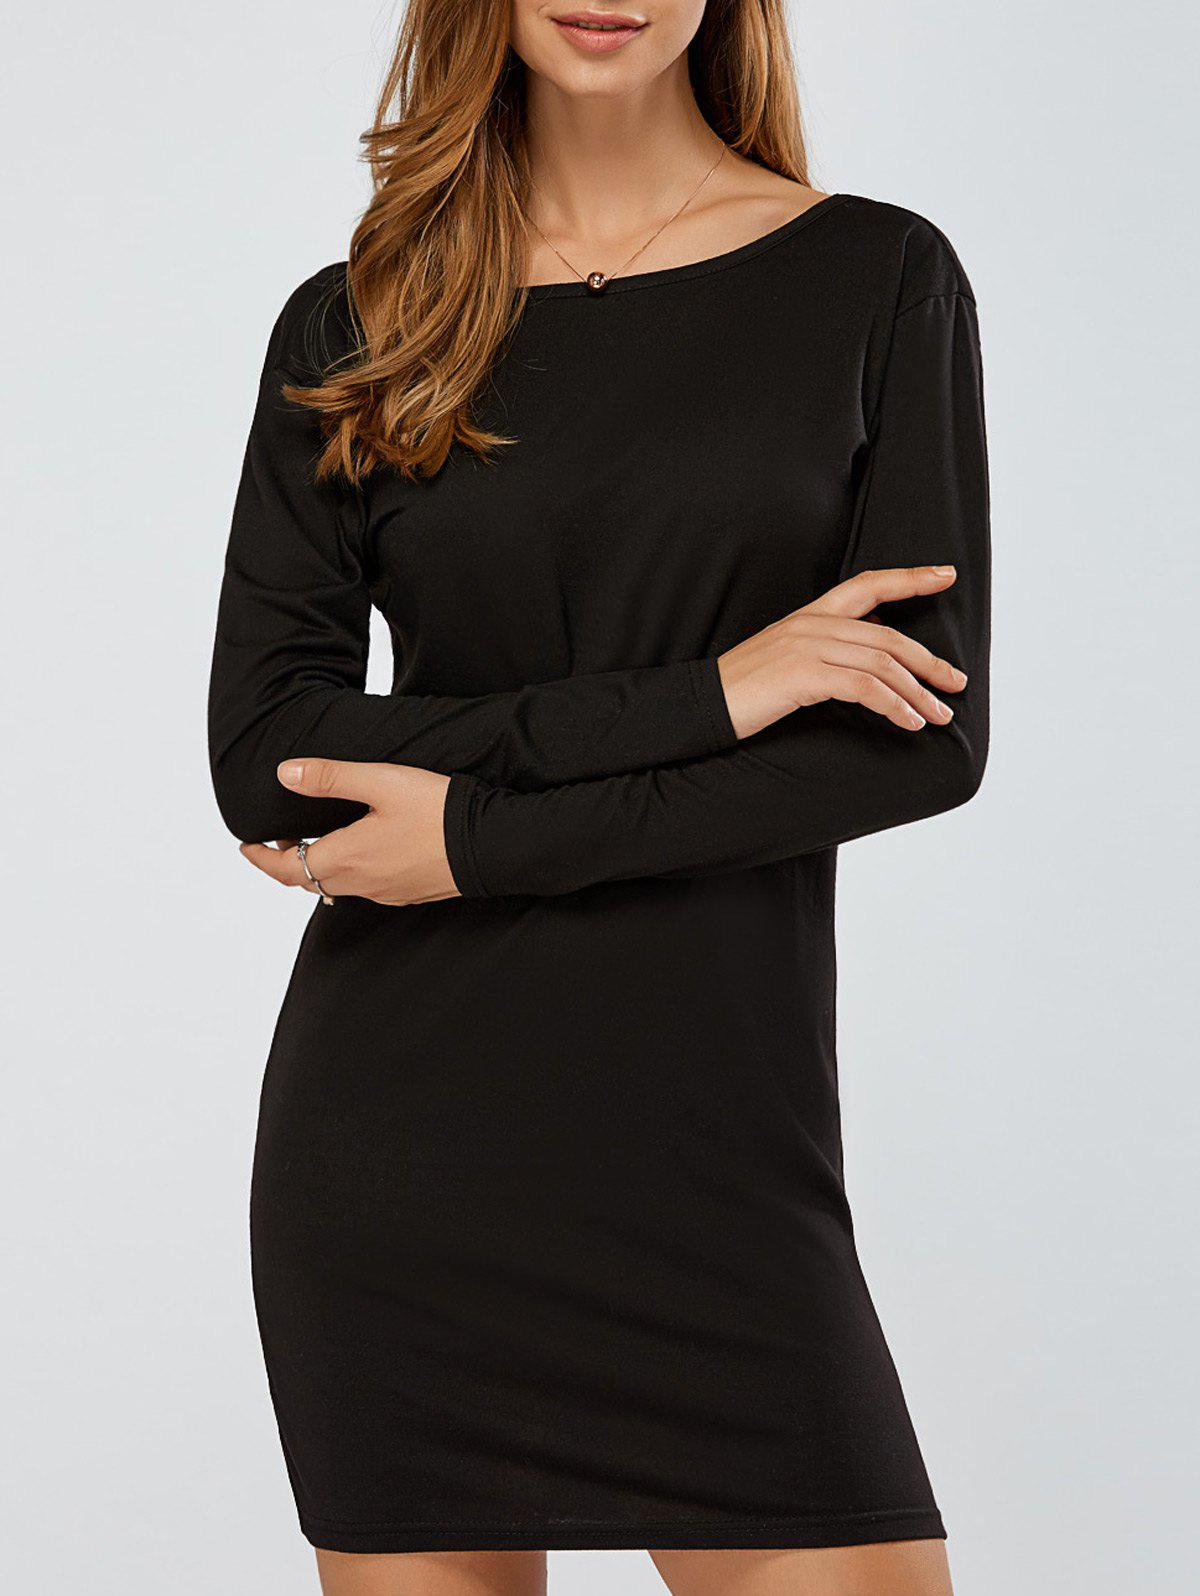 Long Sleeves Backless Knitted Dress